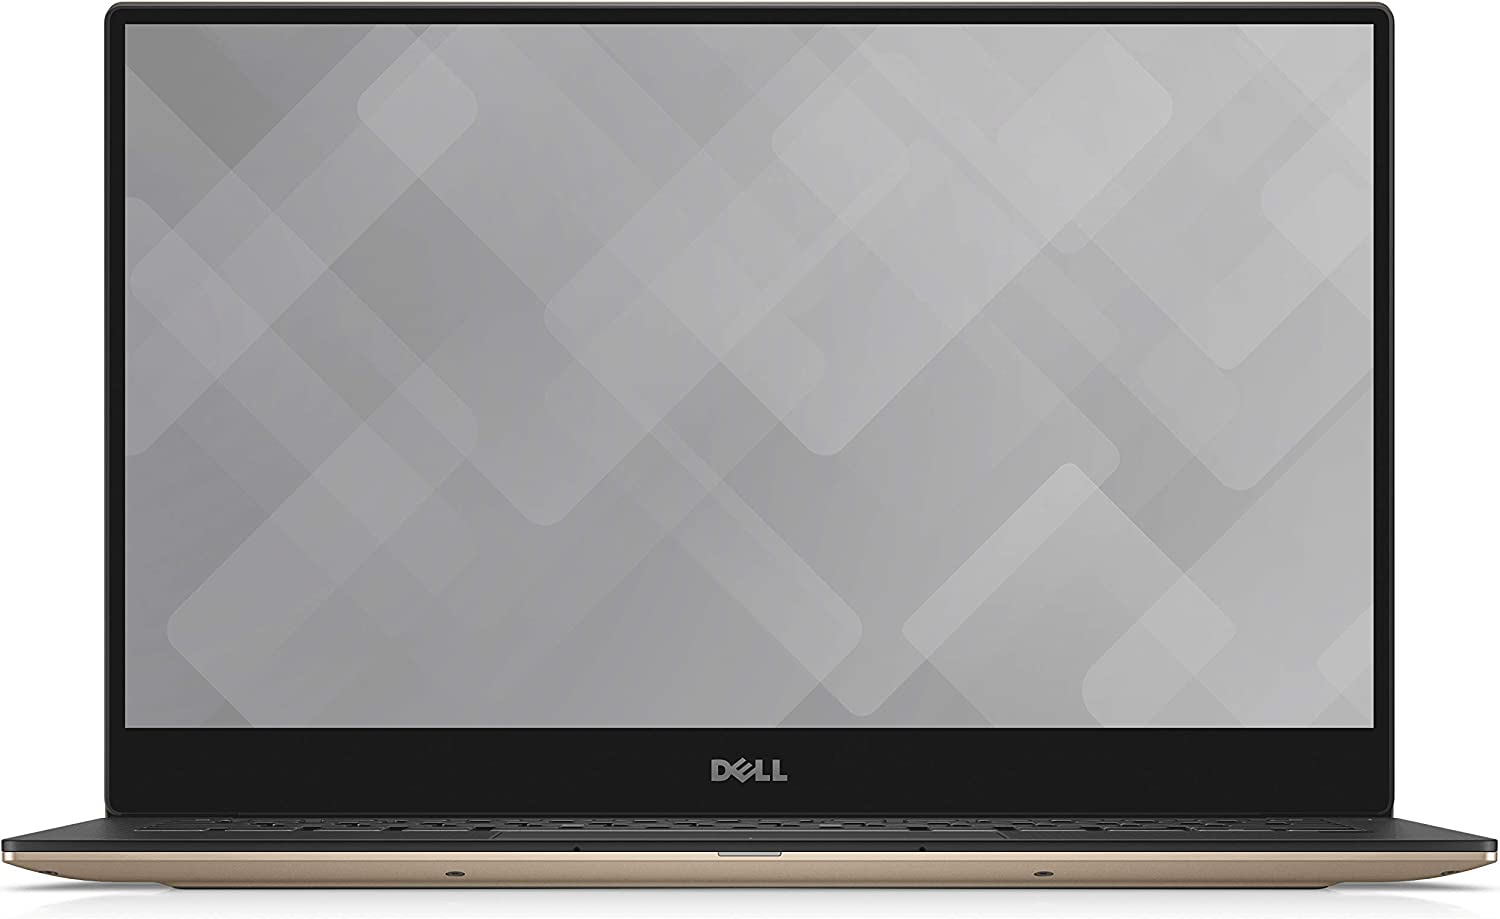 Dell XPS 13 9350 Gold 13.3-Inch QHD+ Touchscreen Laptop 6th Generation Intel Core i7, 8 GB RAM, 256 GB SSD, Win 10 (Certified Refurbished)